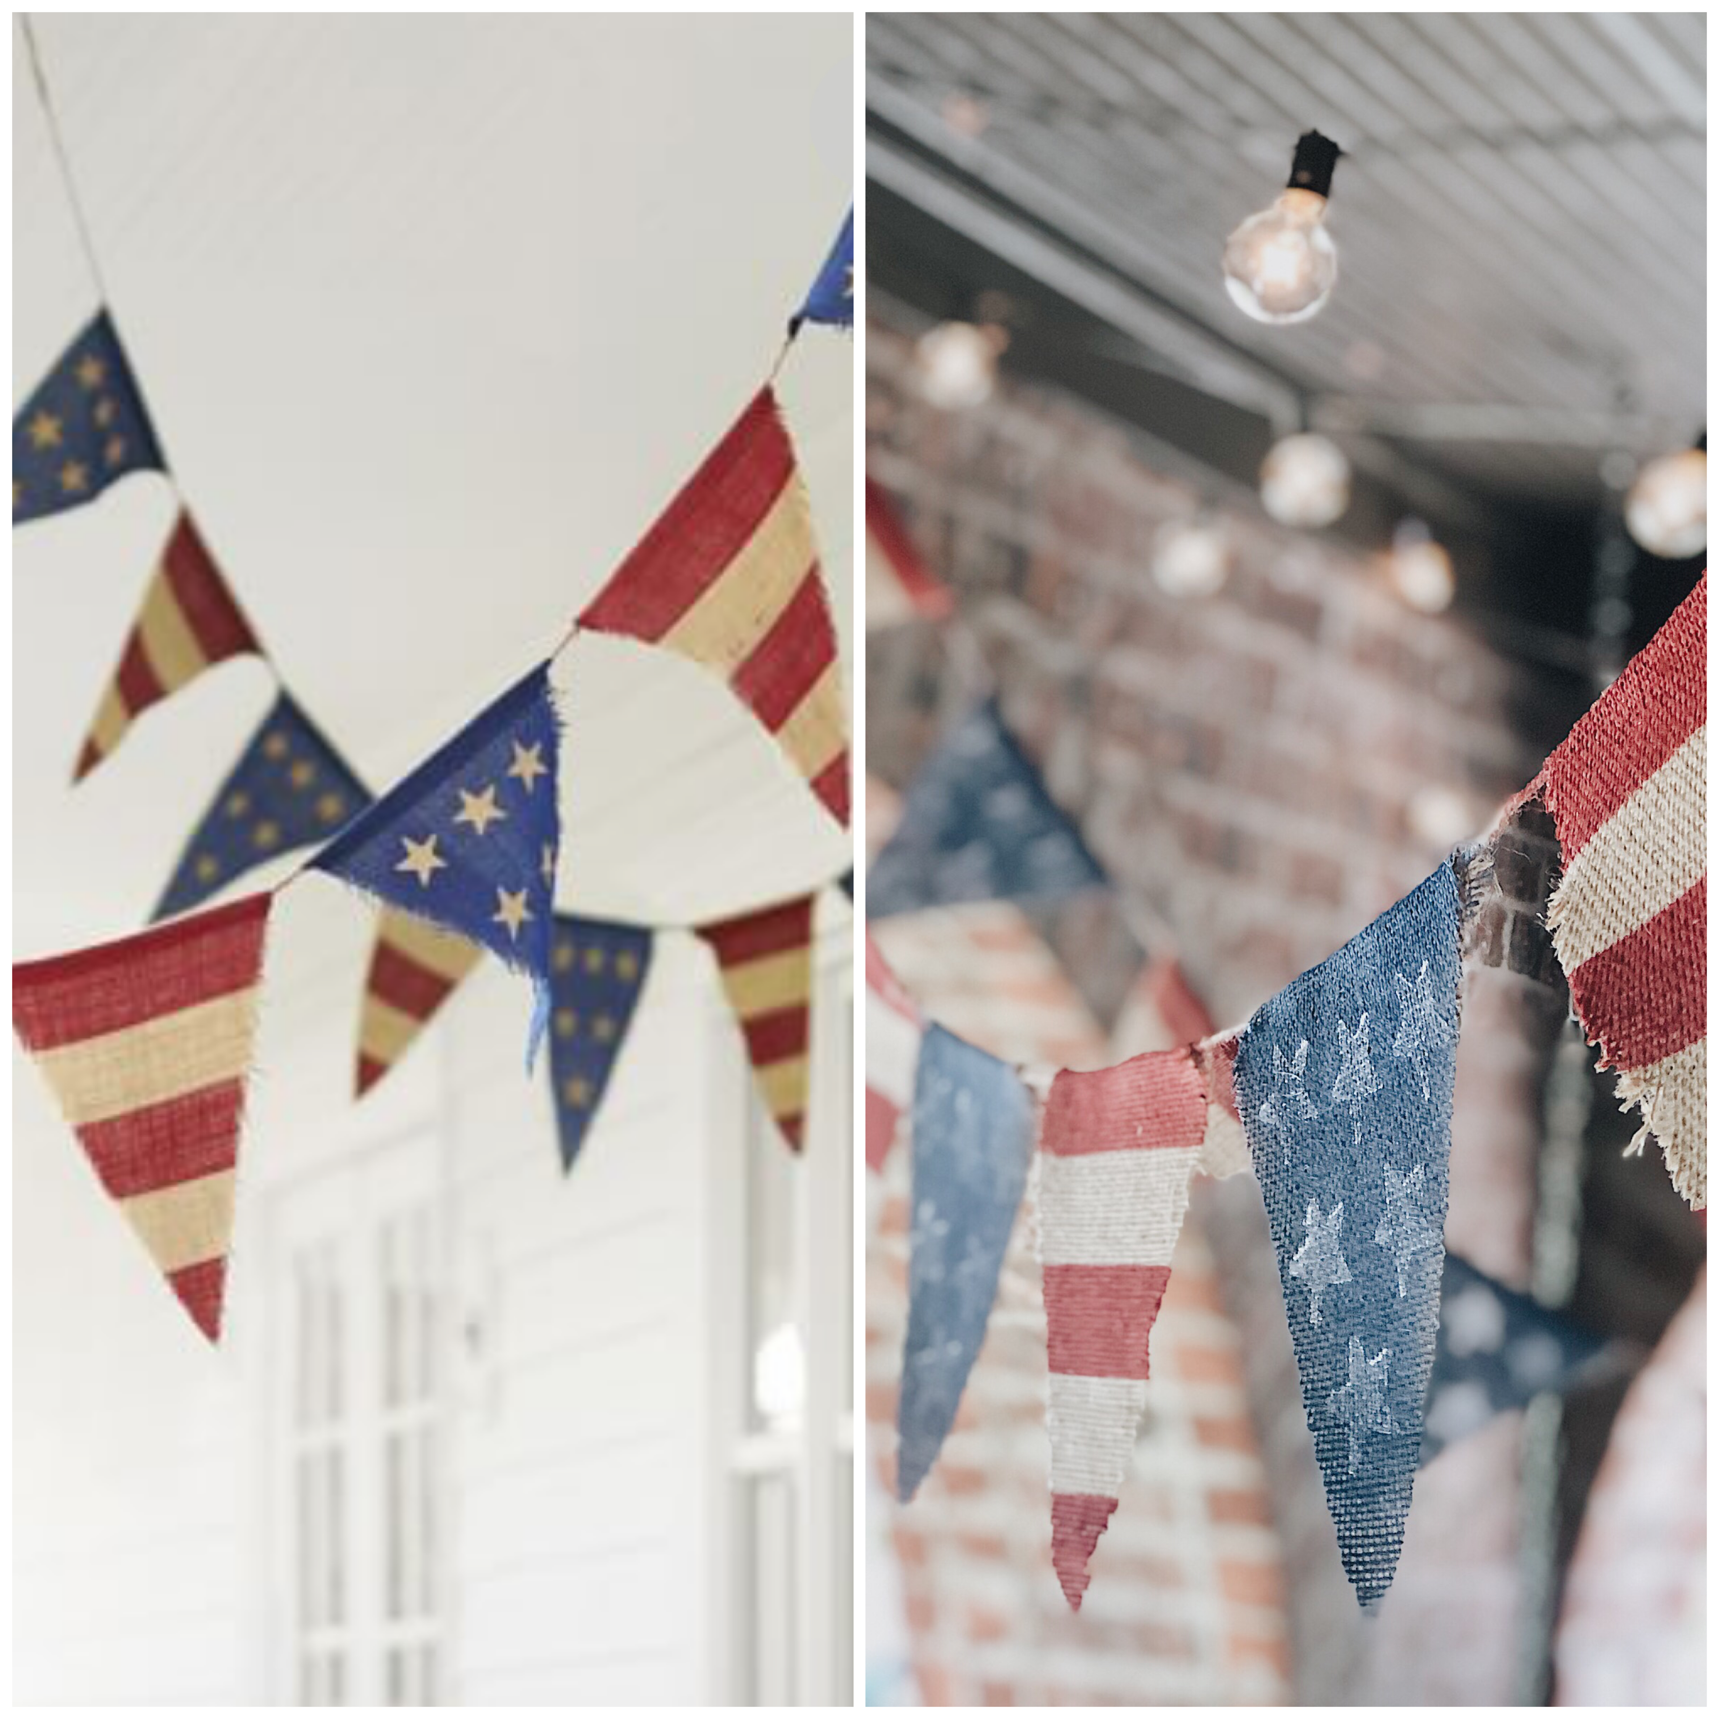 Photo credit for image on left side of collage: www.potterybarn.com